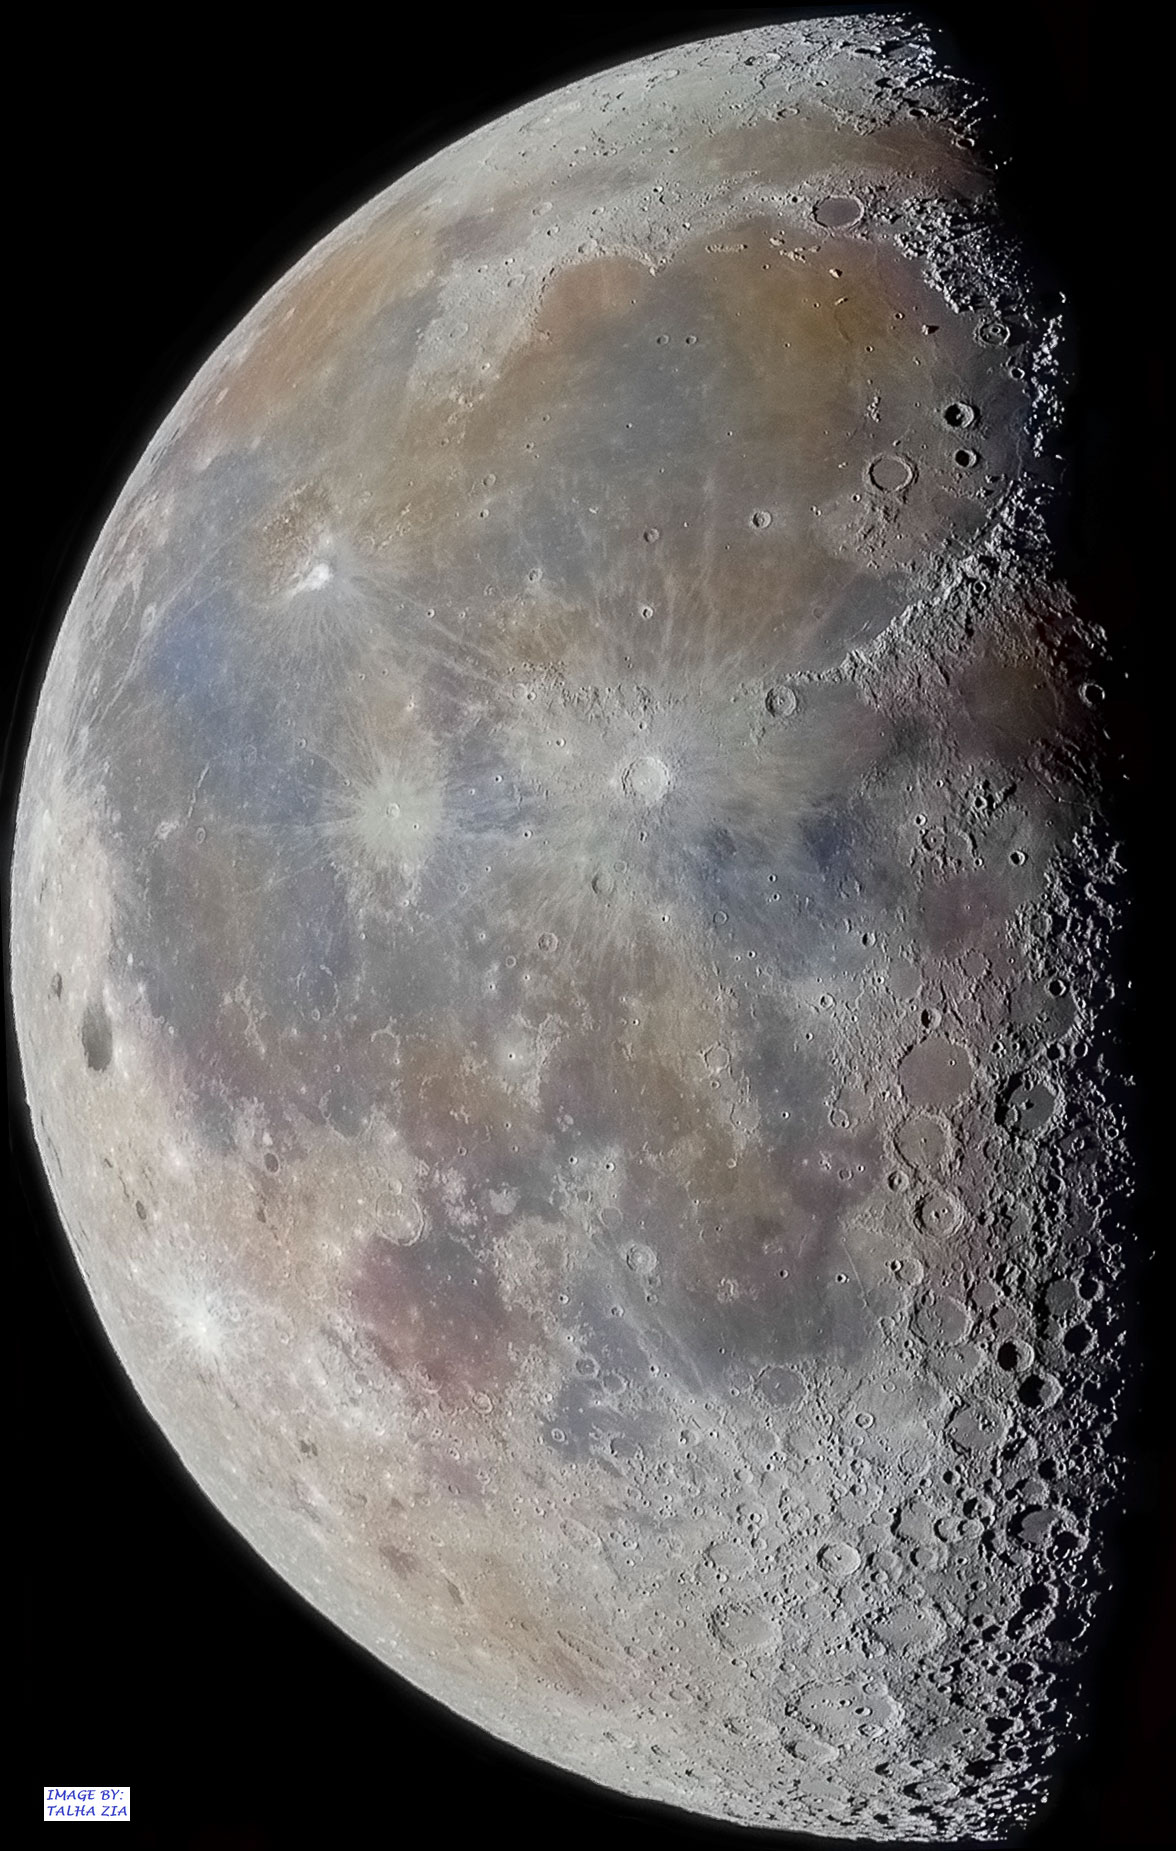 Craters and Shadows at the Lunar Terminator